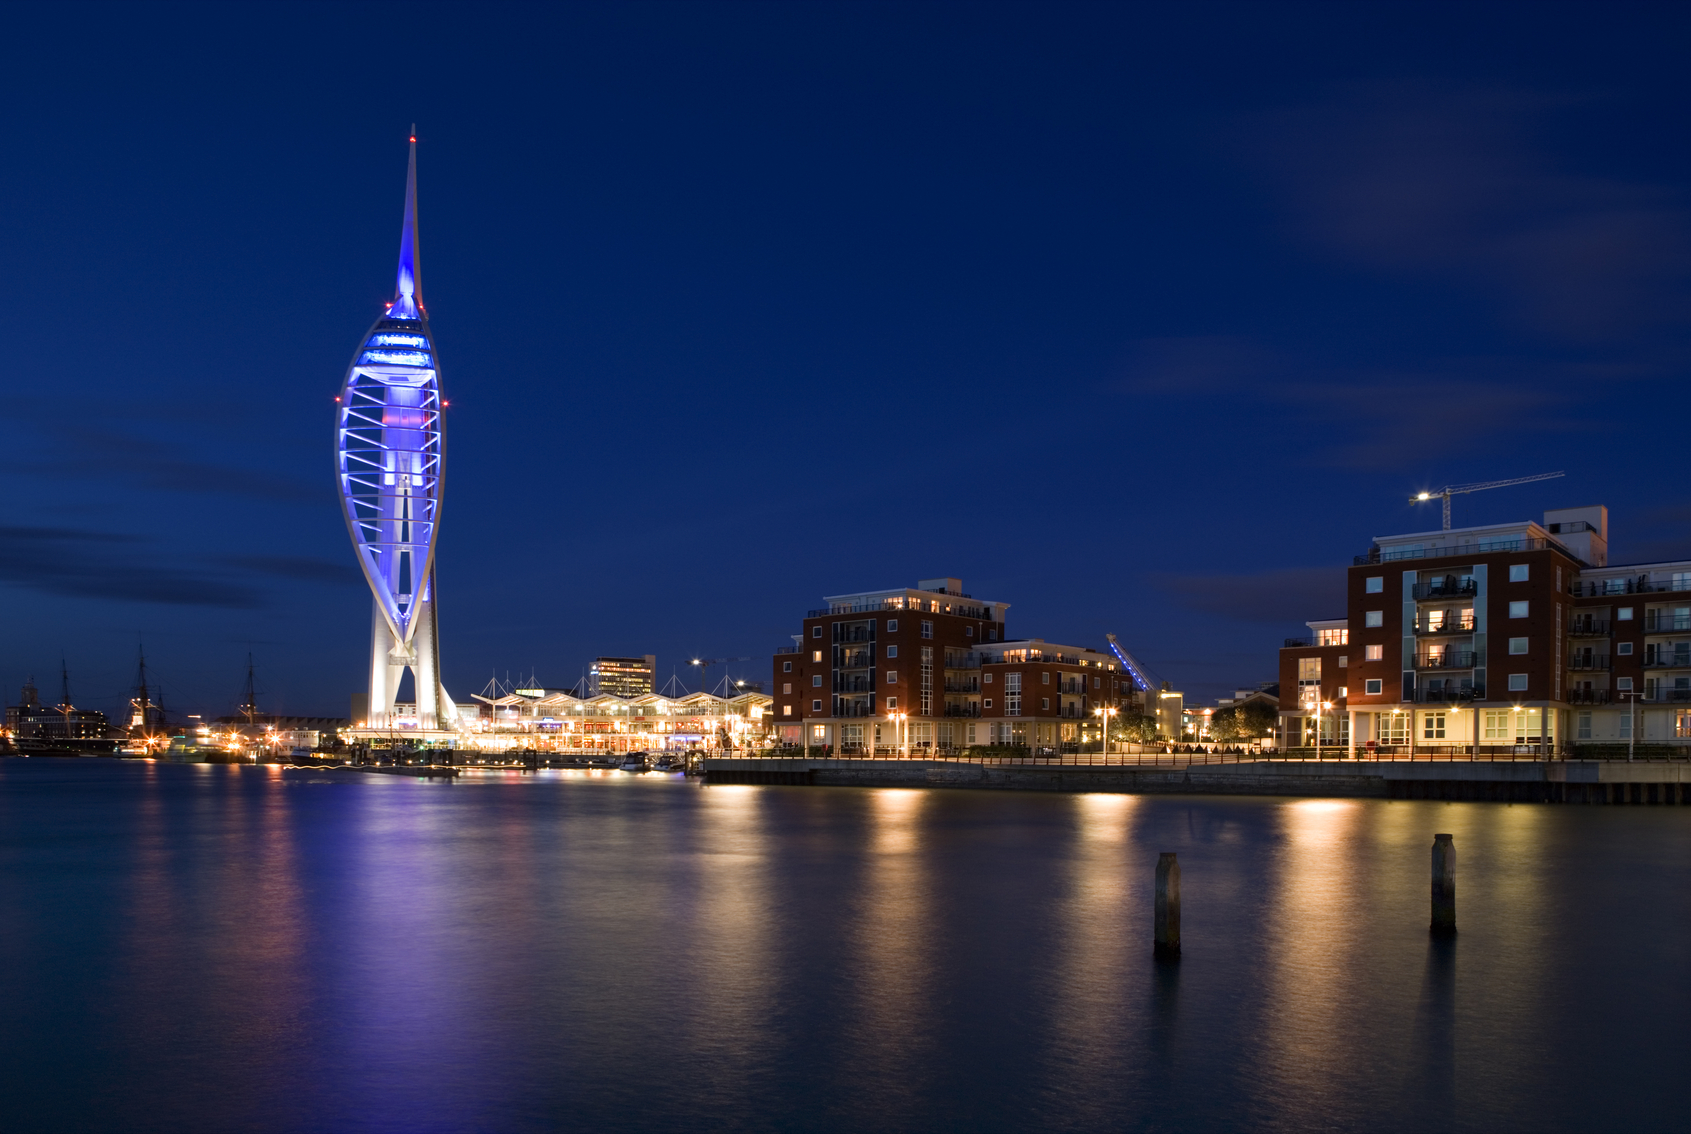 Spinakker Tower, Gunwharf Quays, Portsmouth